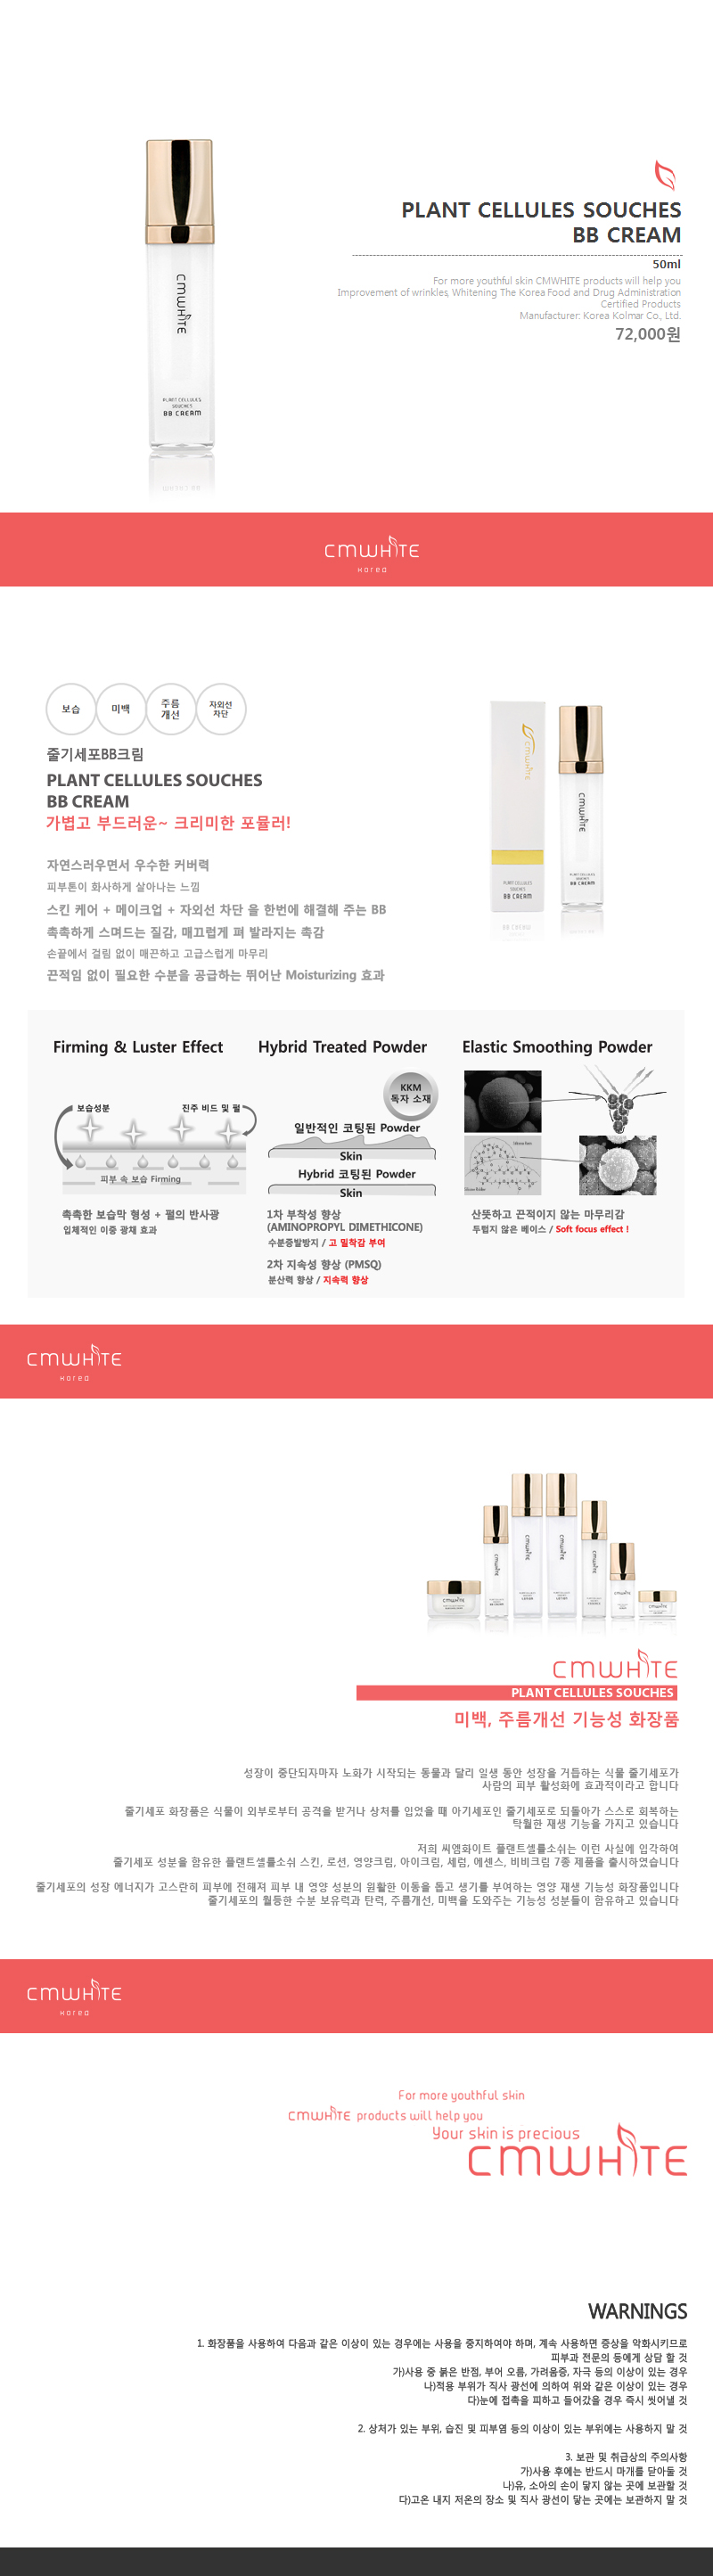 cmwhite_PLANT SELLUSLES SOUCHES BB CREAM KR.jpg